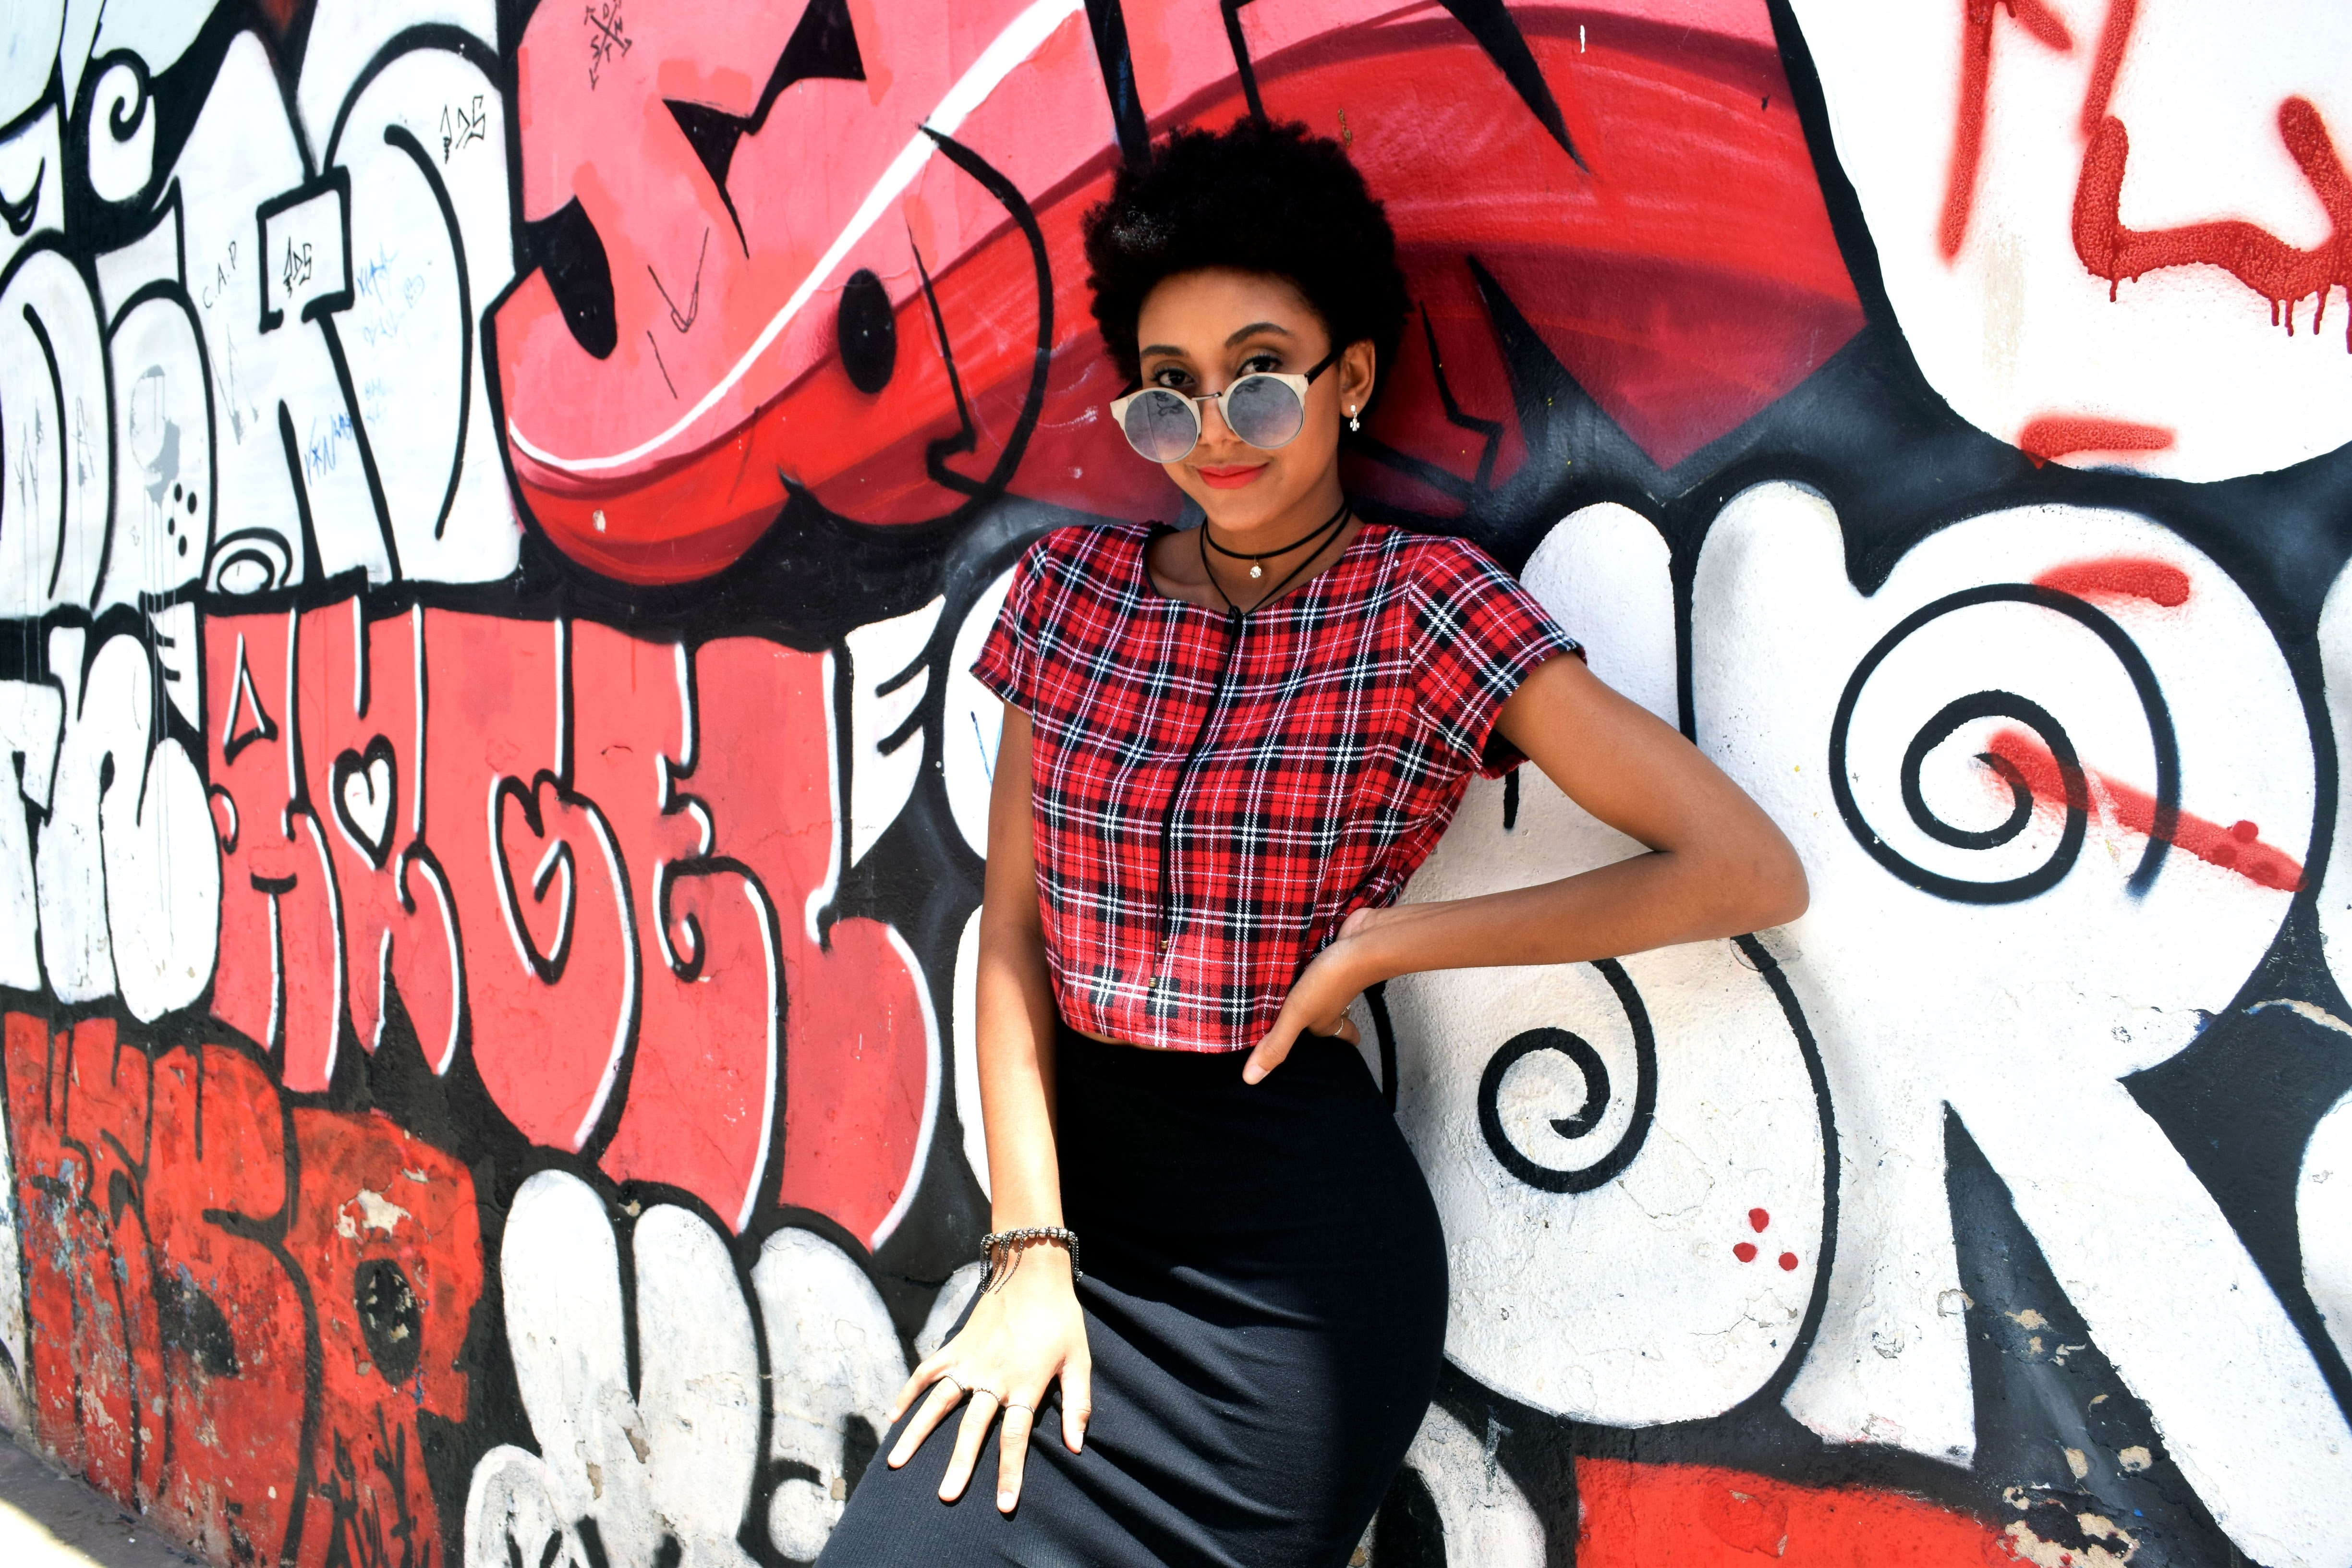 A woman in a plaid shirt leans against a black, red, and white graffitied wall